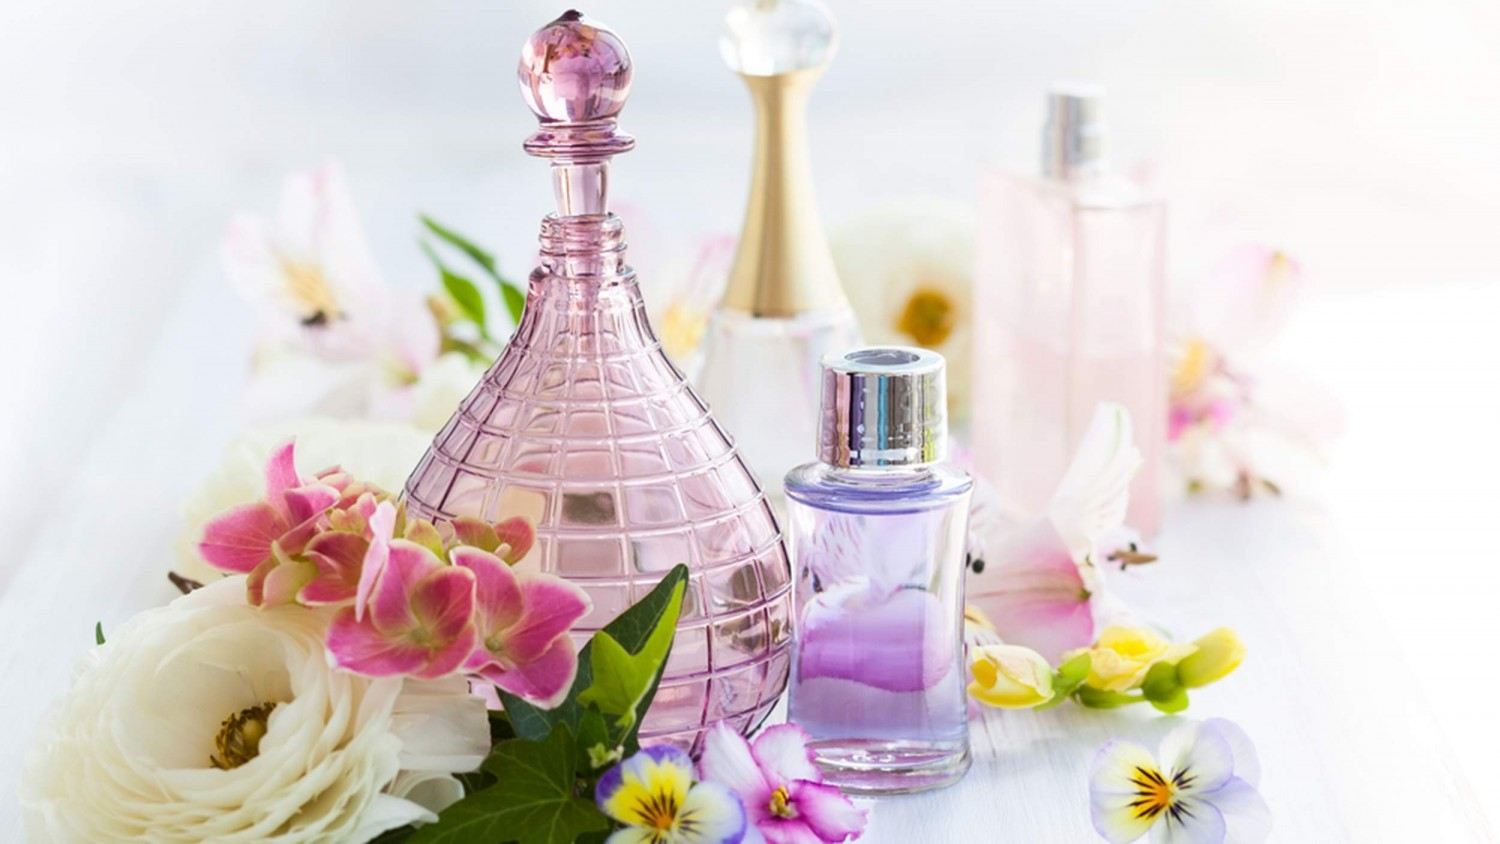 Spring Perfumes 2018 Review, Price, Coupon - PerfumeDiary